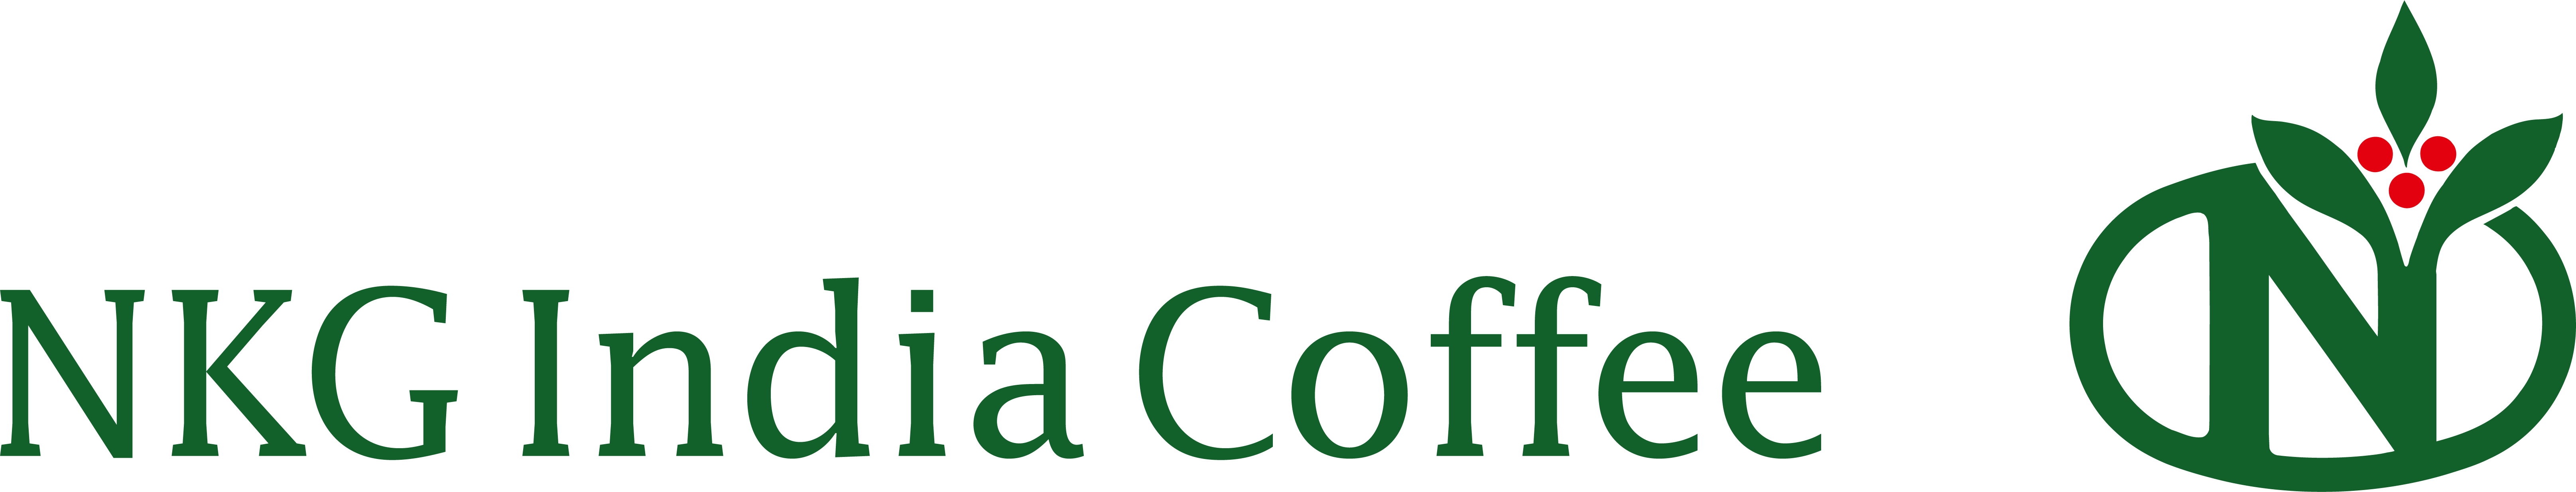 NKG India Coffee Pvt. Ltd. Logo